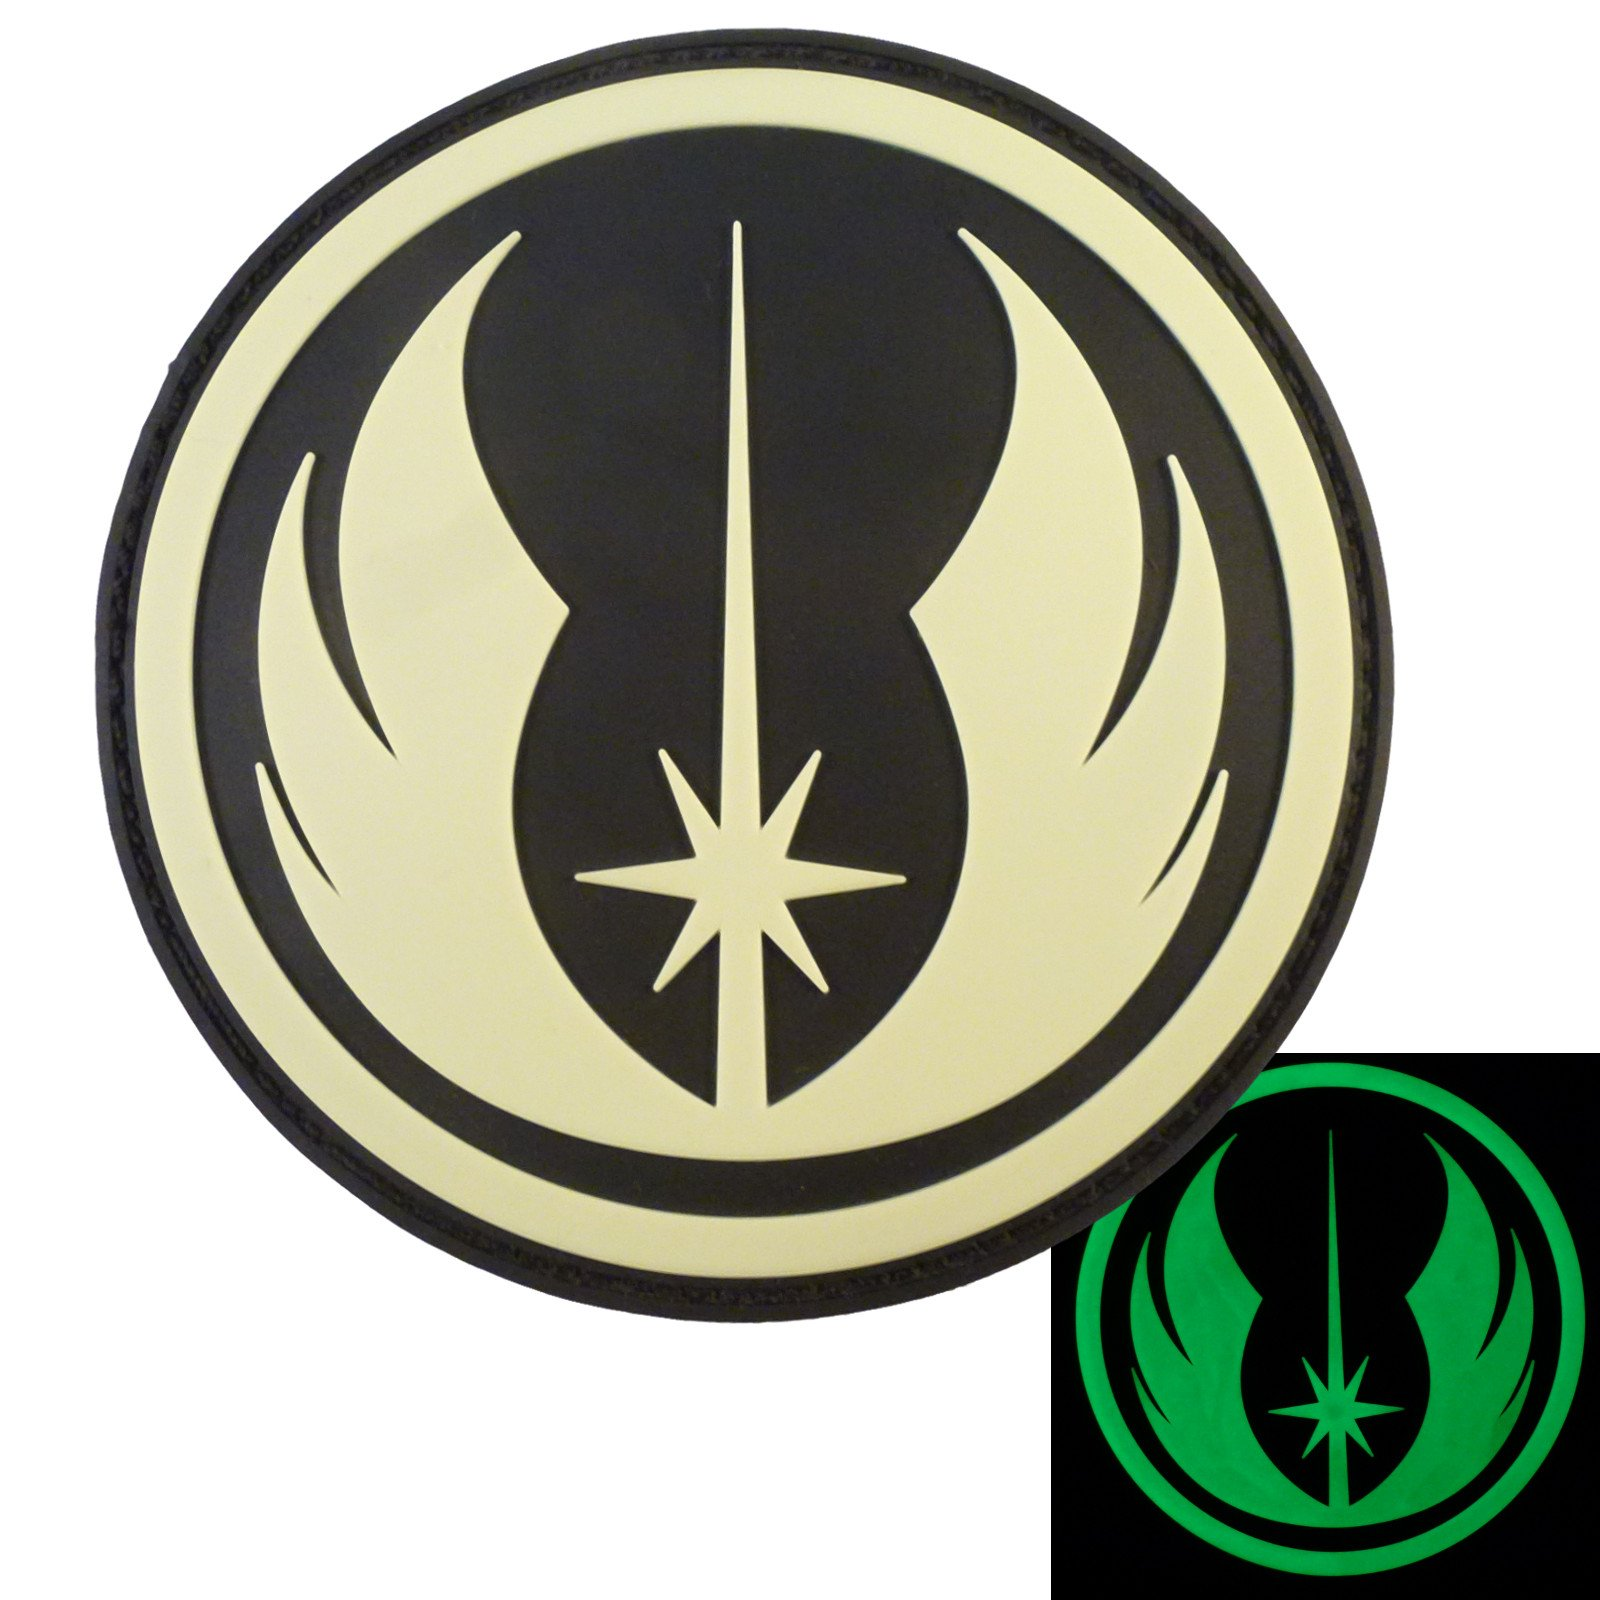 Jedi order glow in the dark star wars gitd pvc rubber 3d hook and jedi order glow in the dark star wars gitd pvc rubber 3d hook and loop patch new free shipping from the usa biocorpaavc